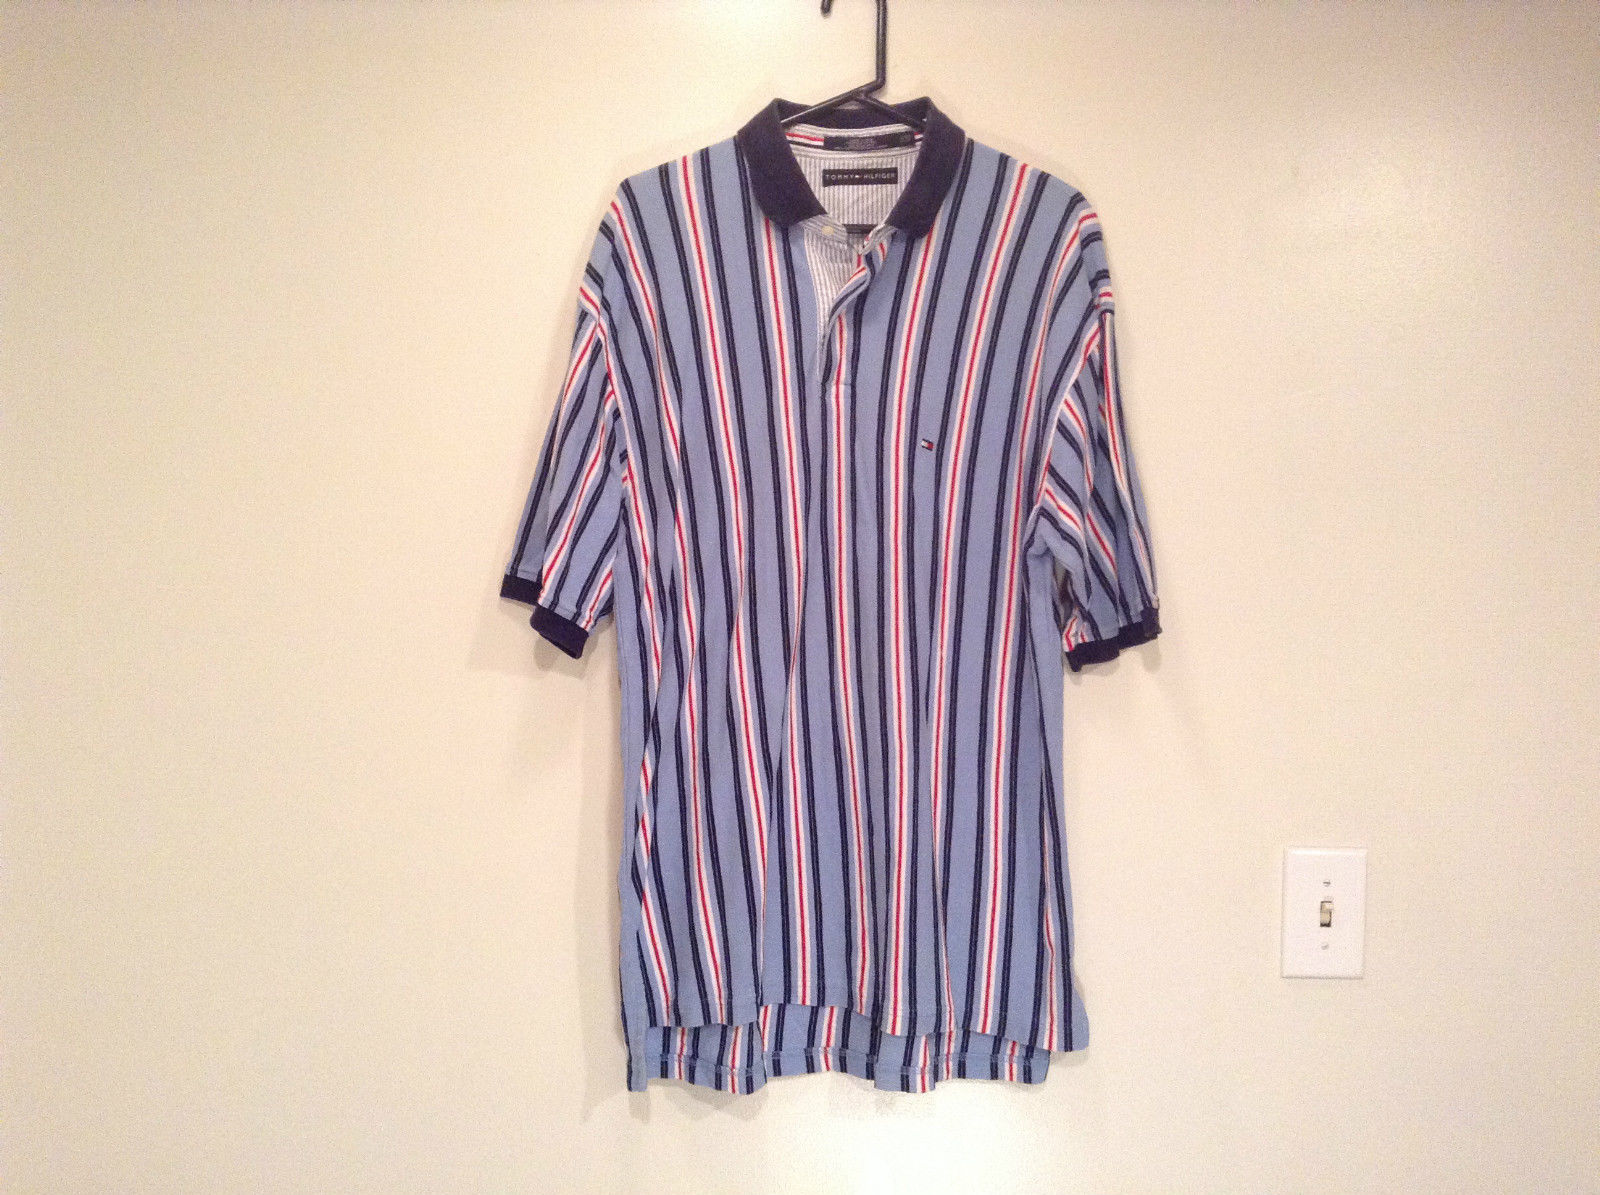 Tommy Hilfiger Size XXL 100 Percent Cotton Short Sleeve Blue with Stripes Shirt